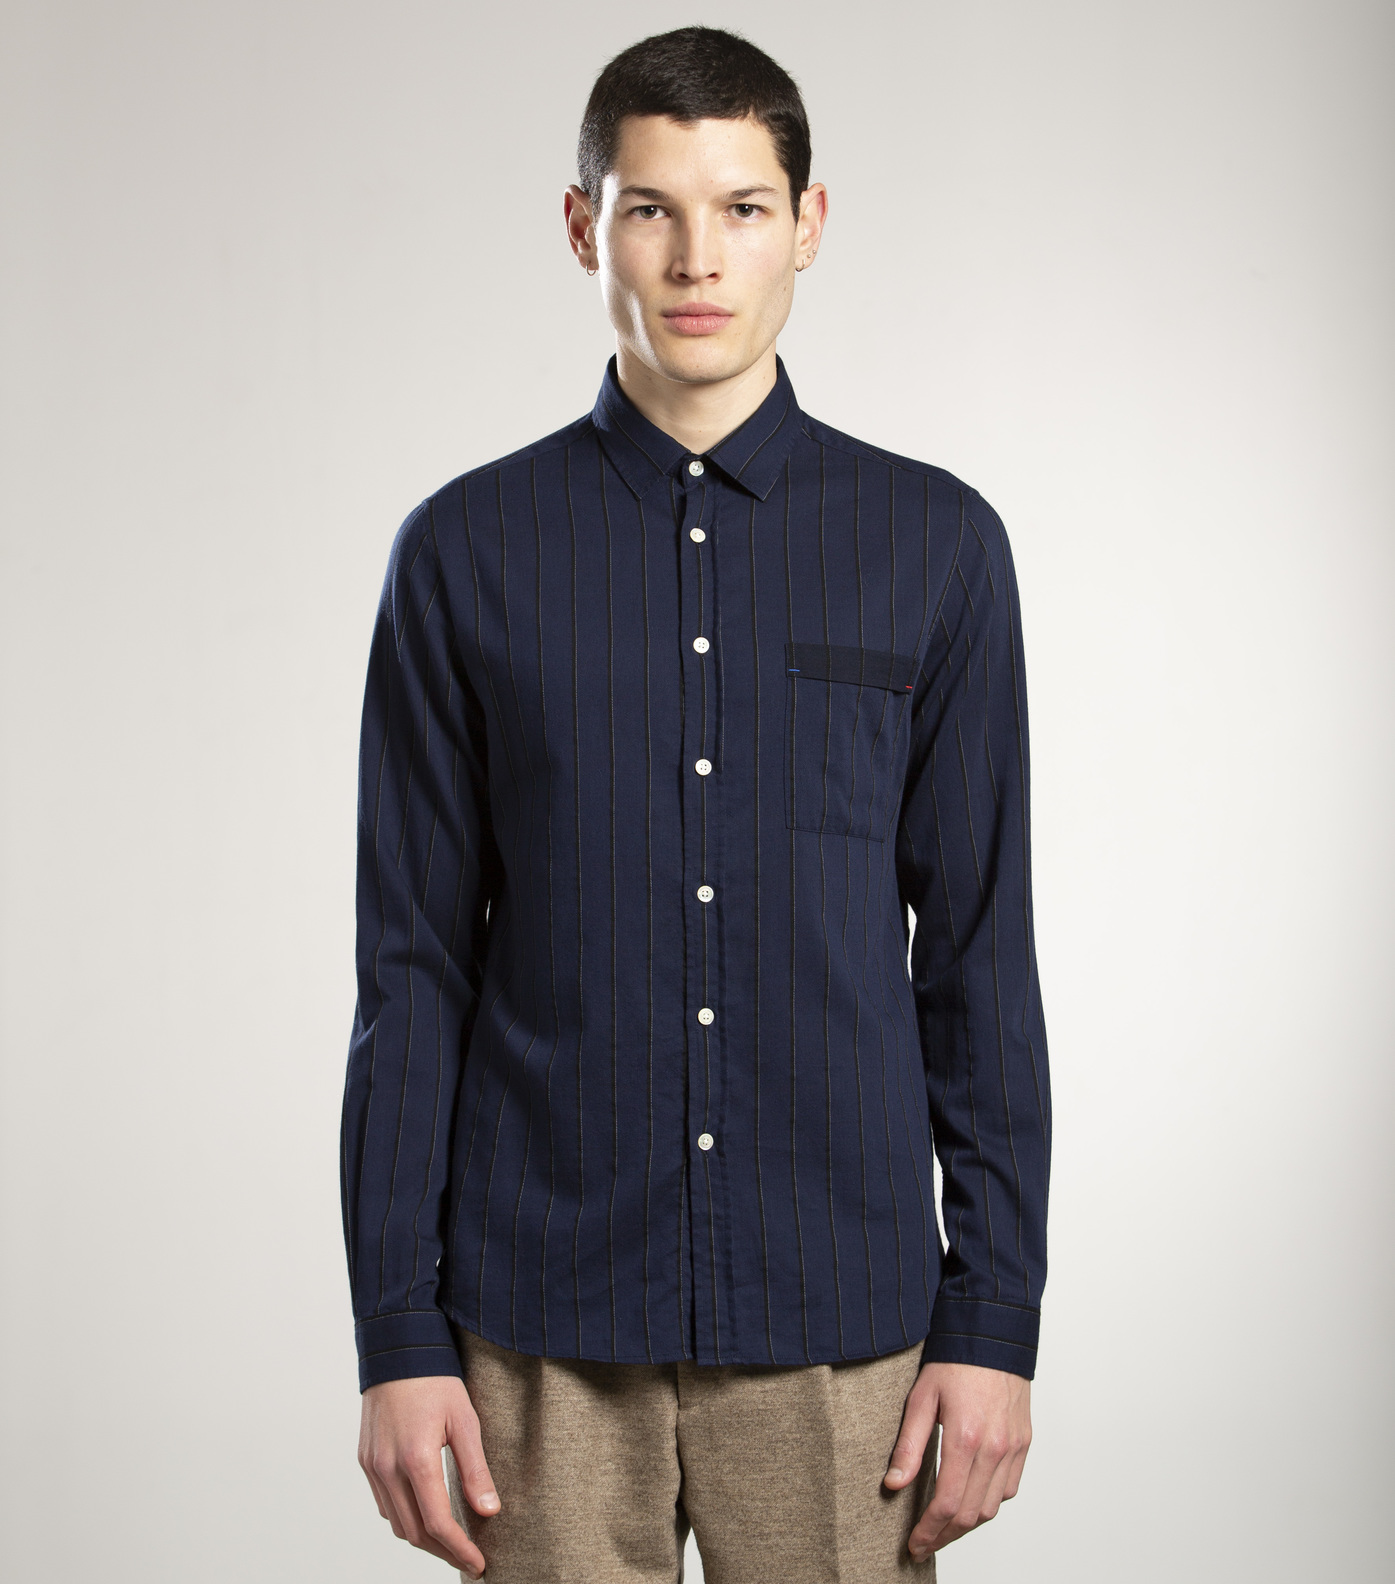 SHIRT ROSSEL - Navy stripes